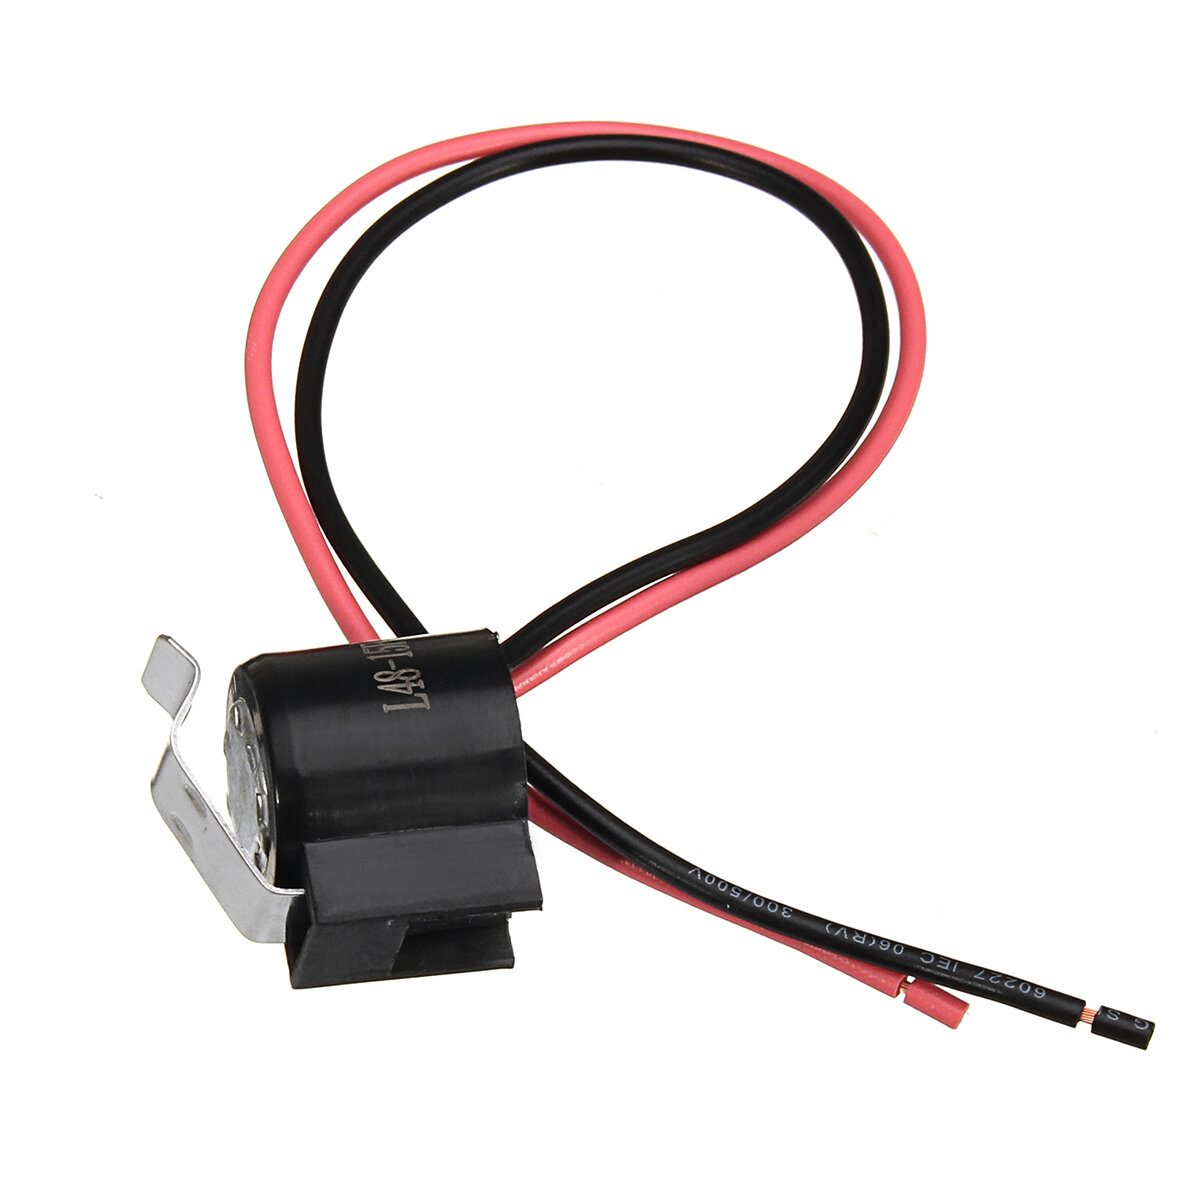 hight resolution of refrigerator defrost thermostat replacement for whirlpool kenmore w10225581 cod